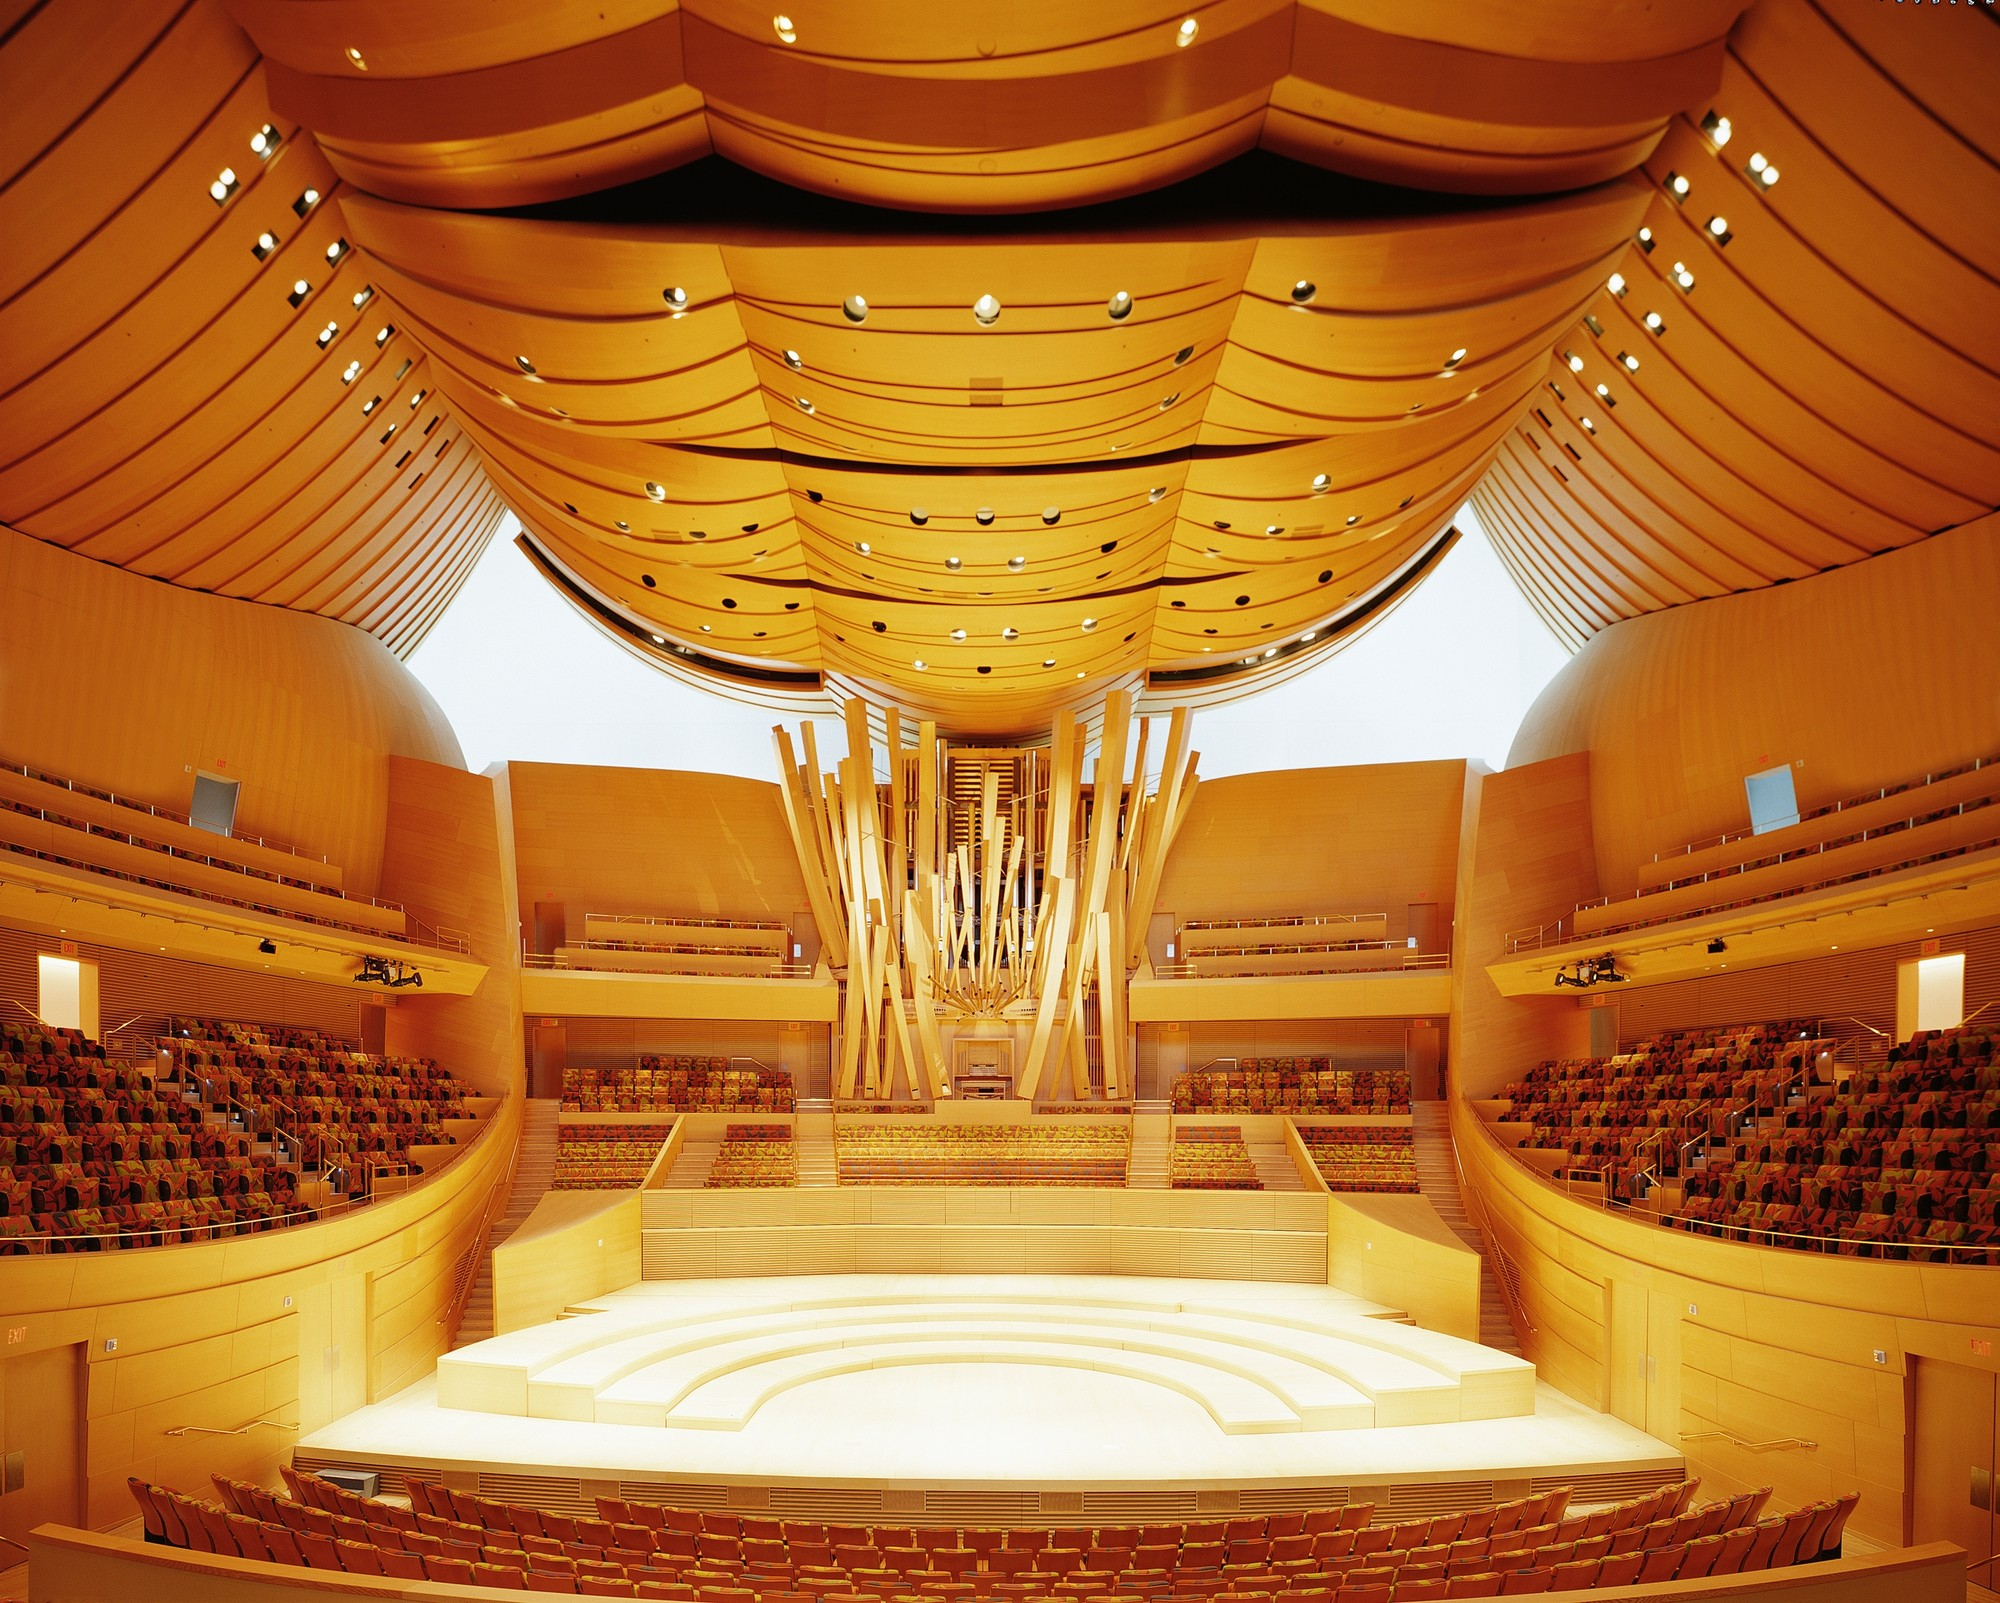 © 2013 Los Angeles Philharmonic Association